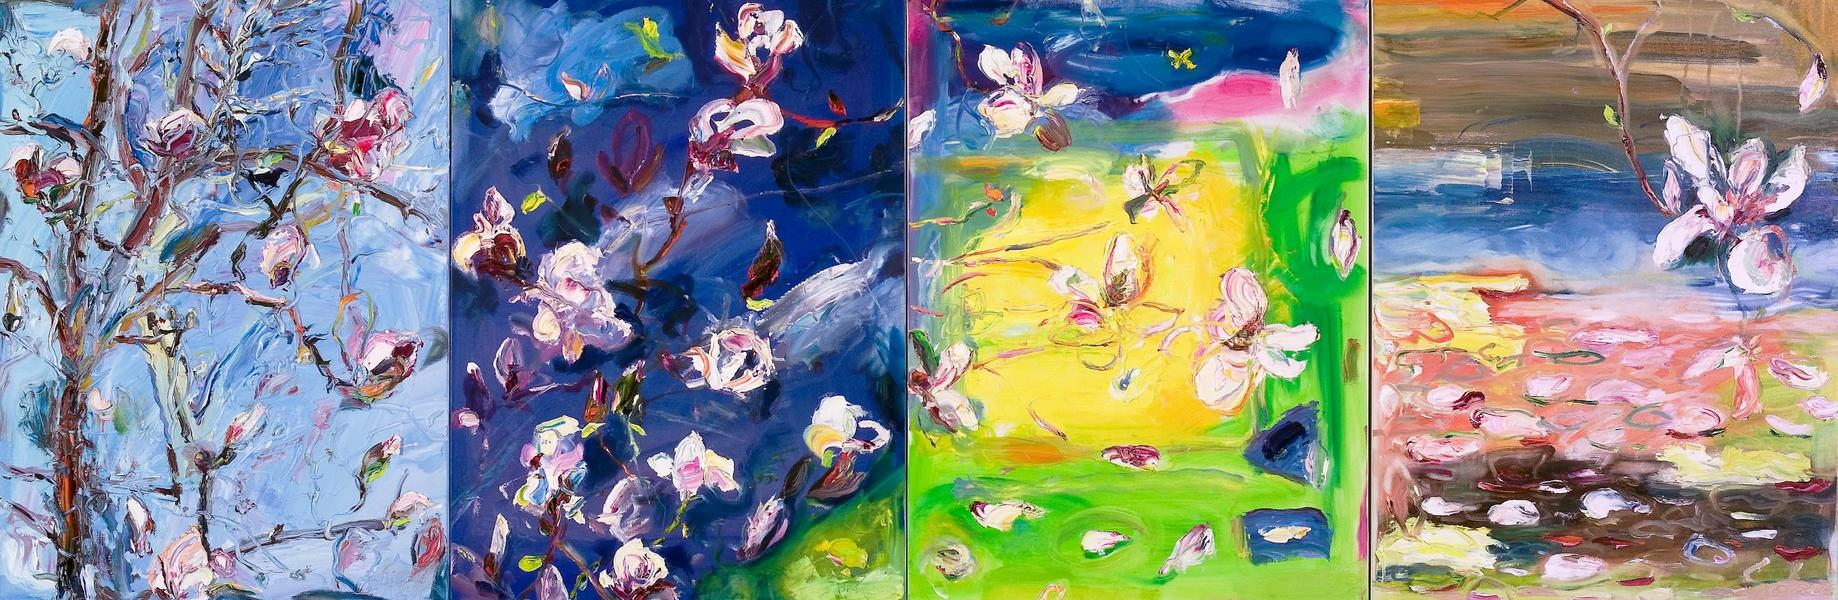 Big Sky Studio Works, and Plein Air Abstractions The Flight of the Magnolia